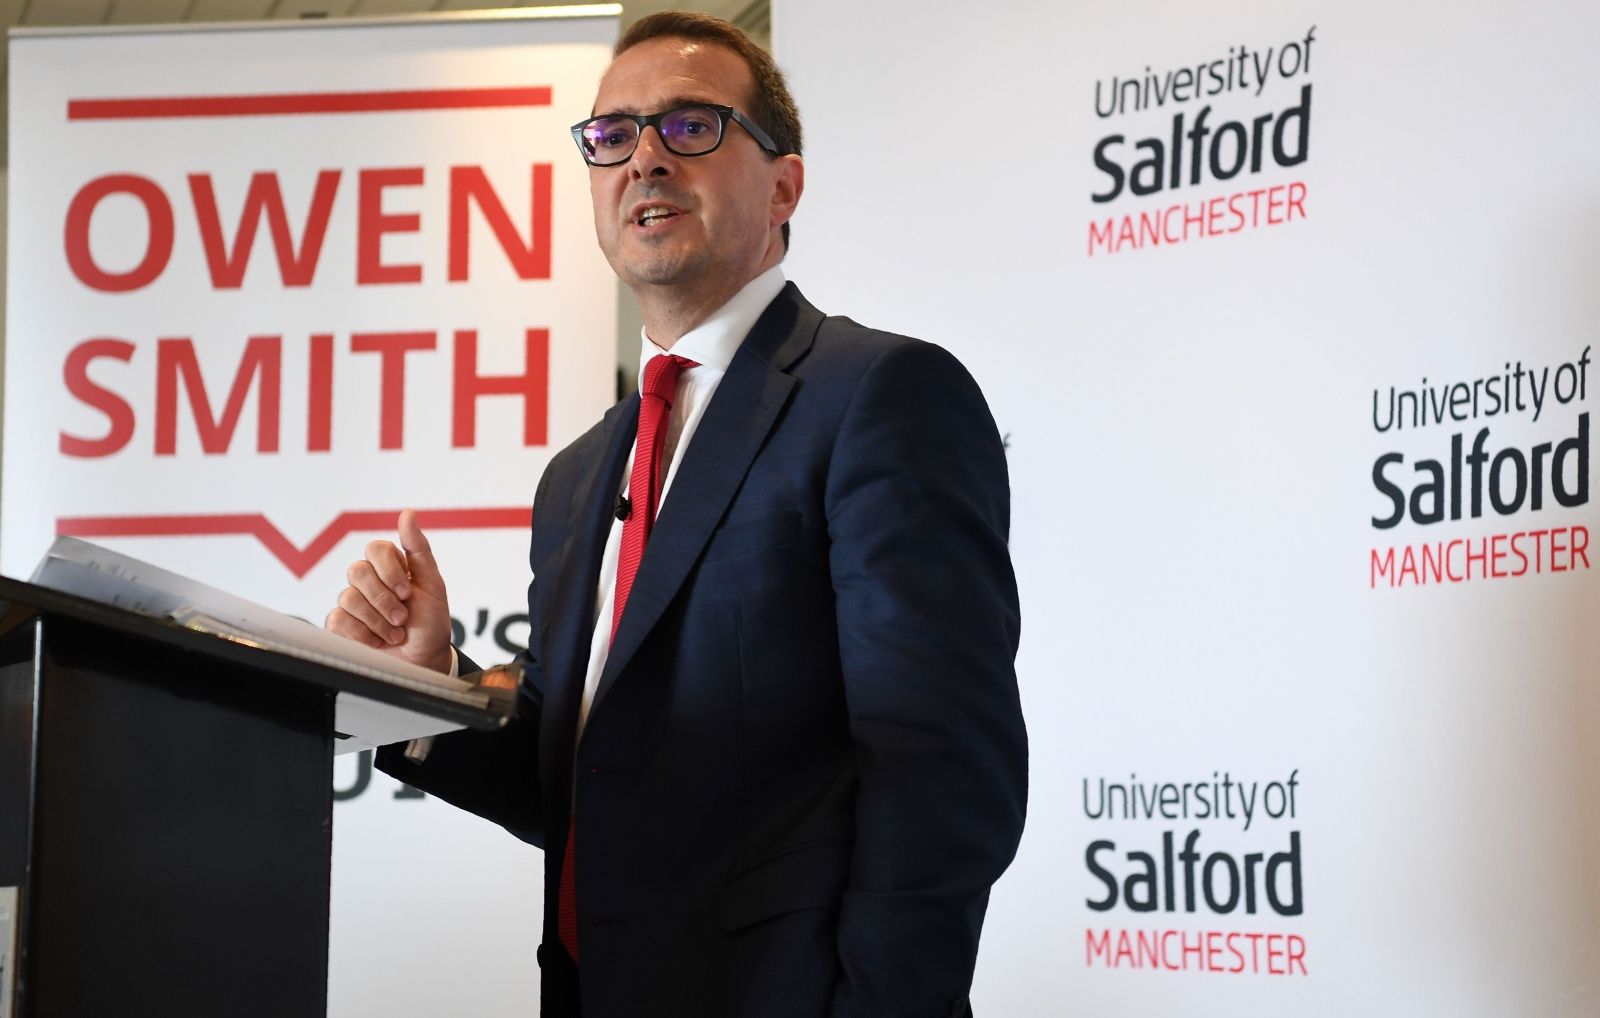 Owen Smith talks about the NHS